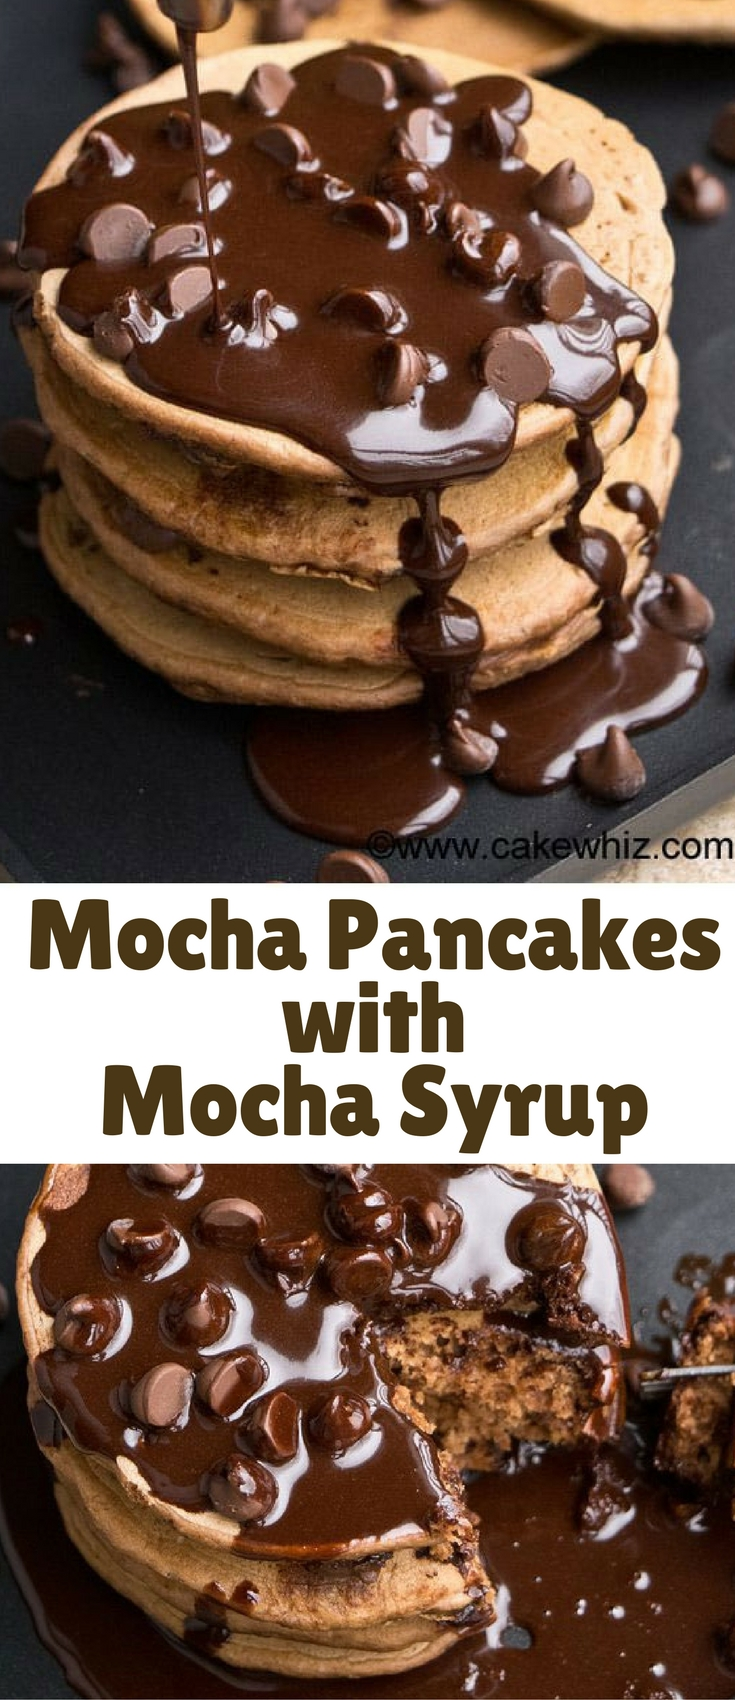 These easy mocha pancakes with mocha syrup are soft and fluffy. Prefect for breakfast or dessert and packed with chocolate and coffee flavors.